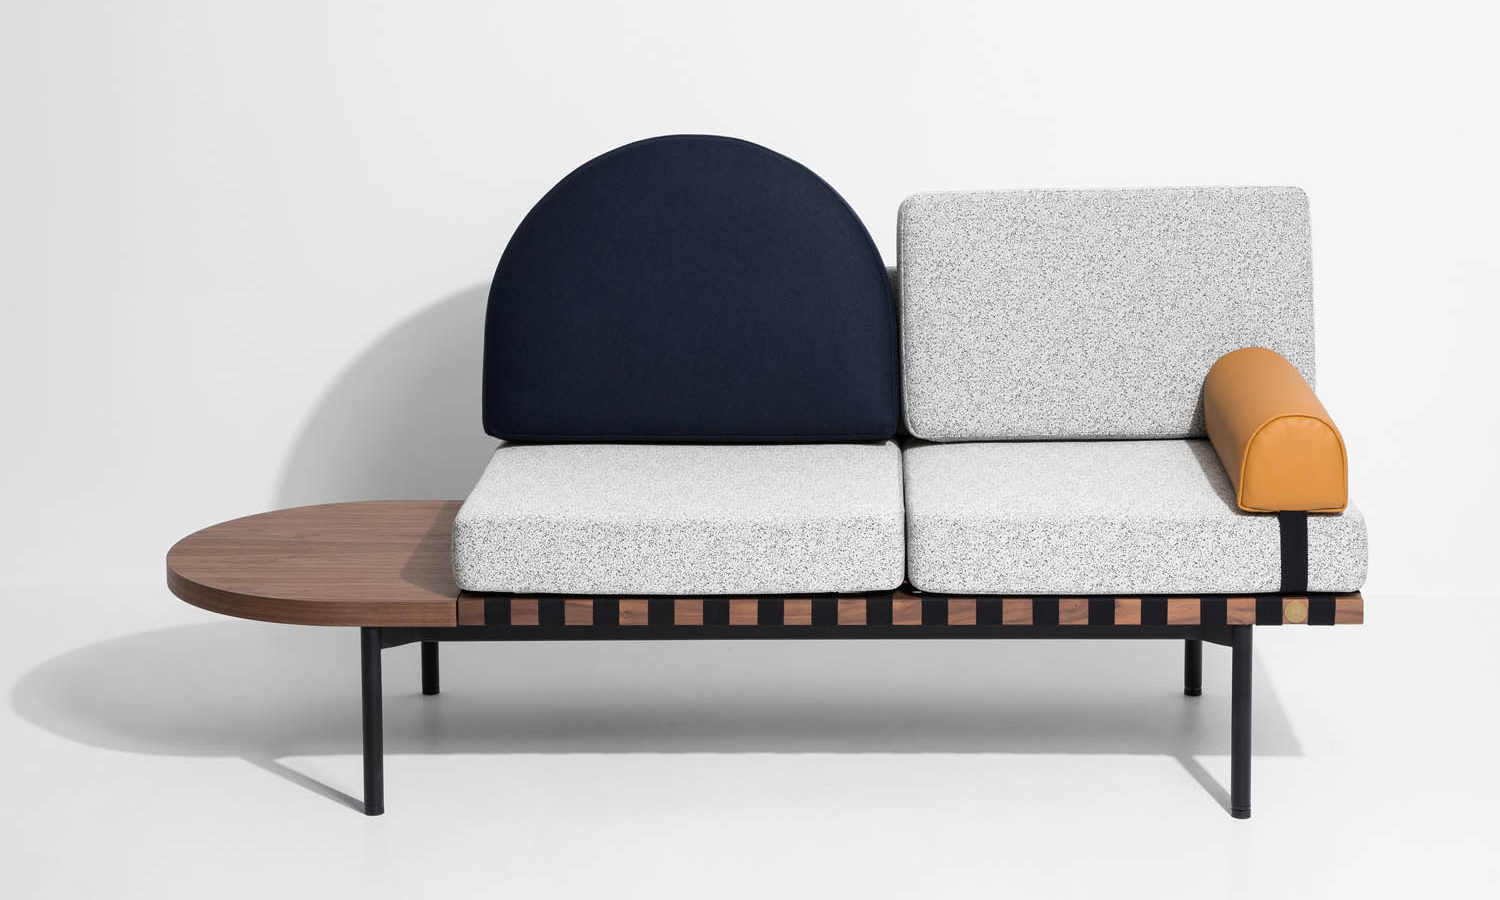 Daybed banquette Petite Friture